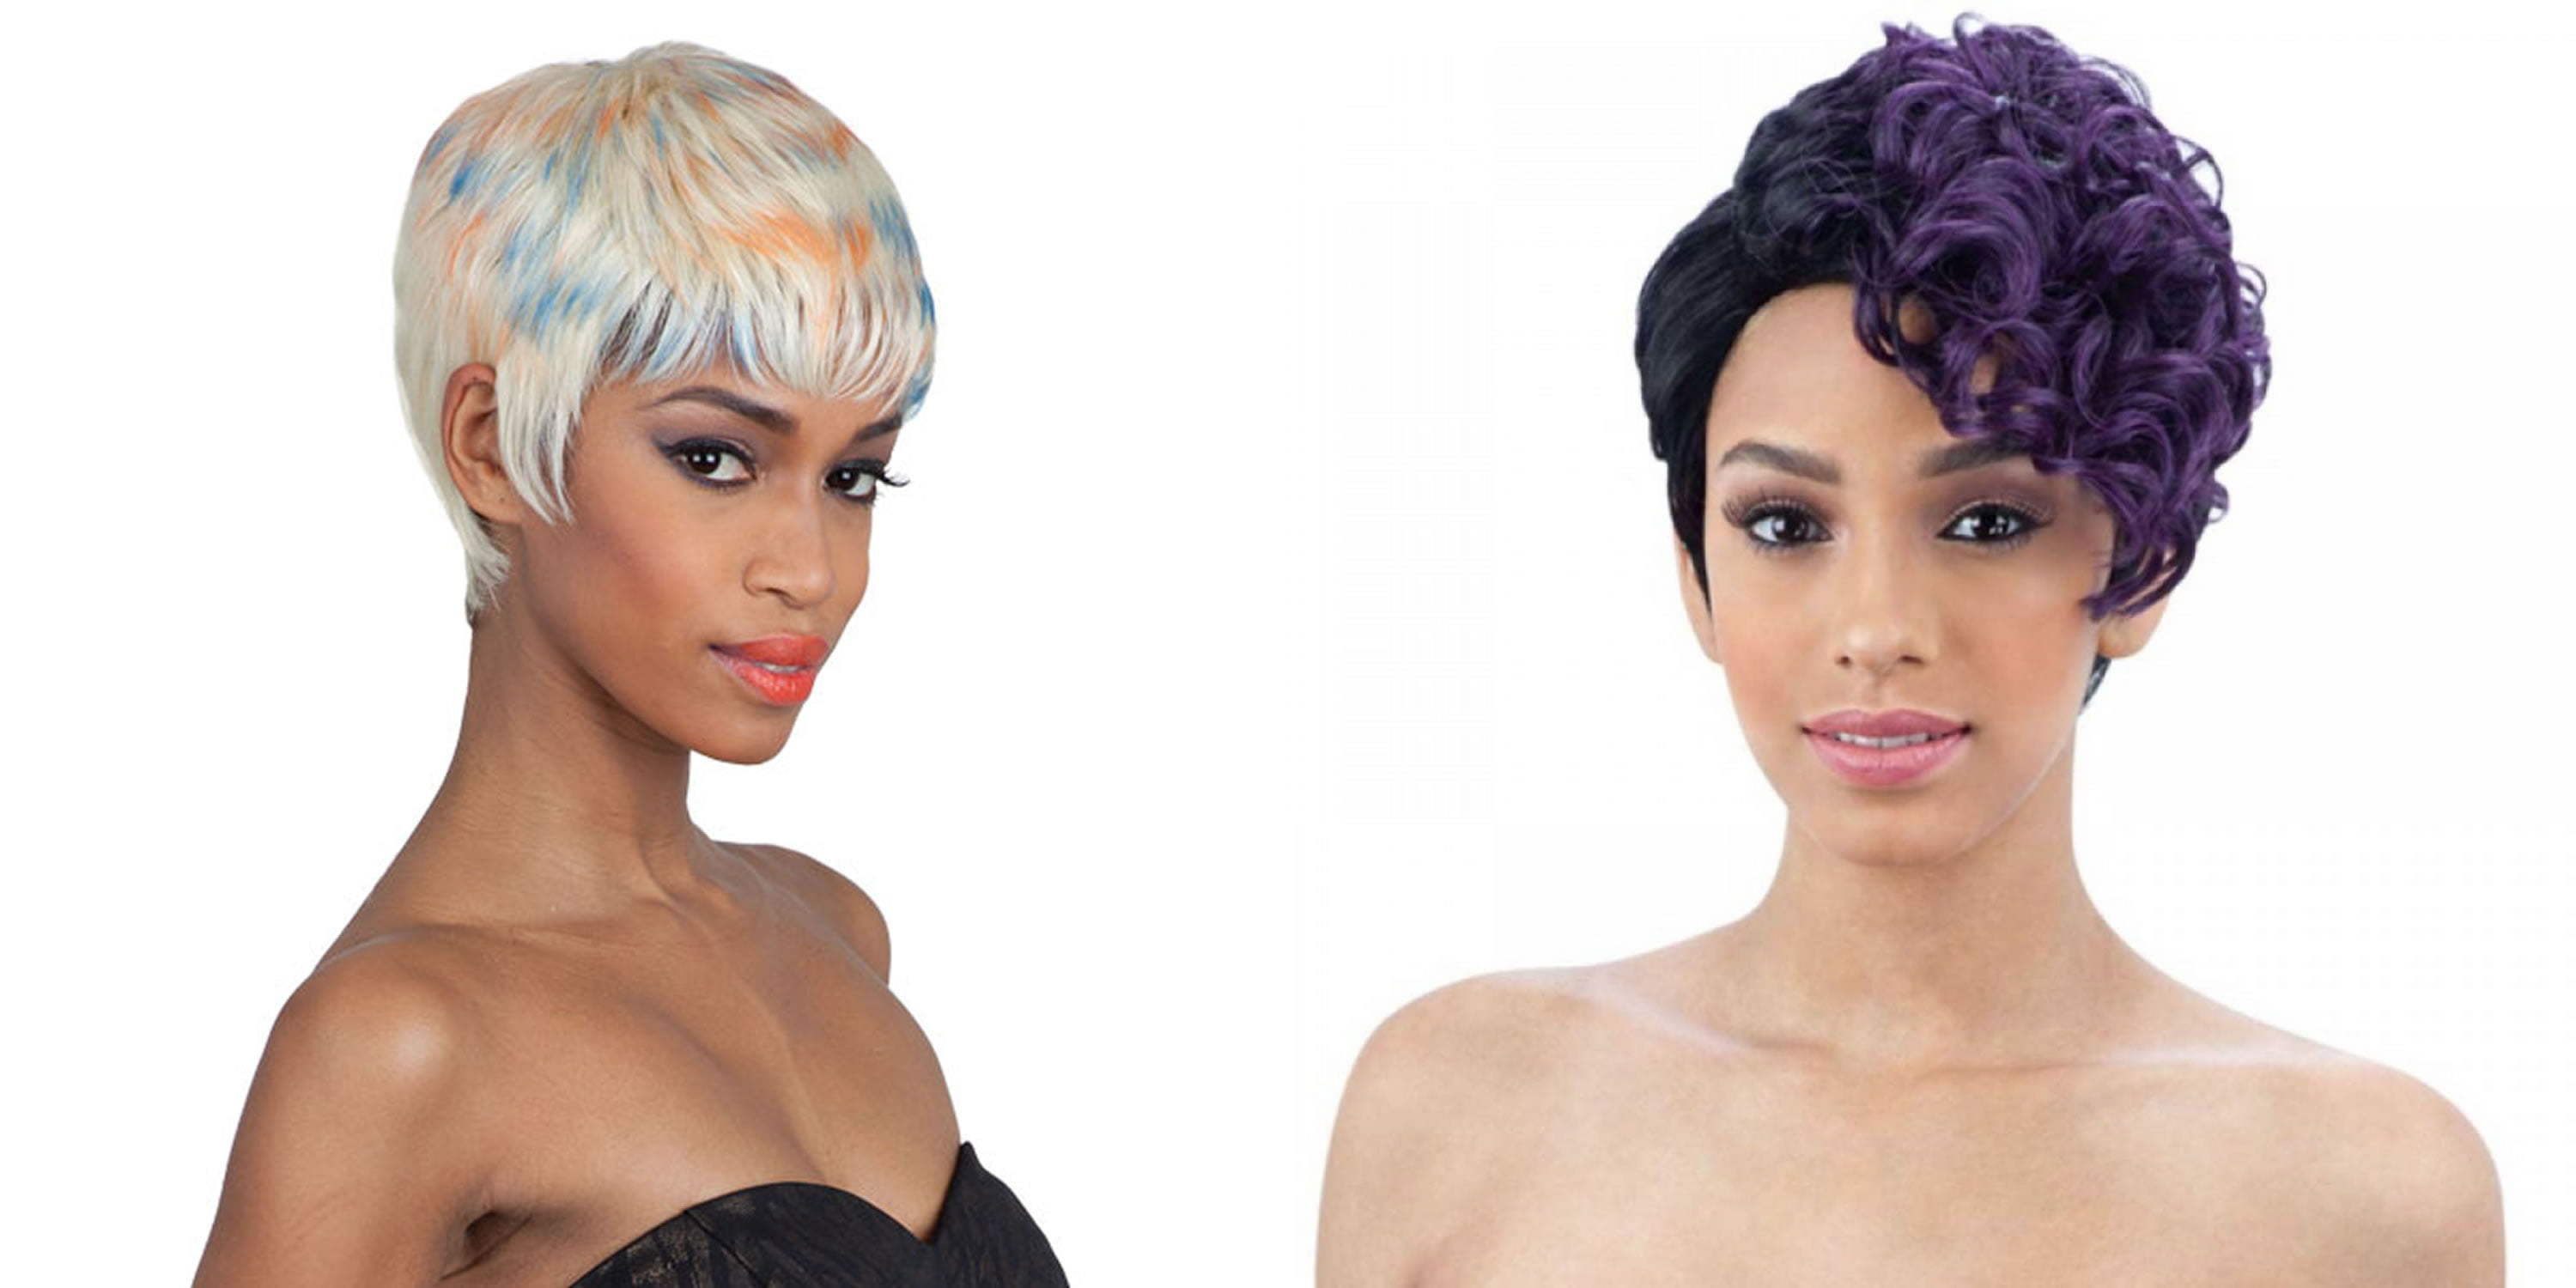 Pixie Short Haircuts And Hair Colors For Black Women Best Short